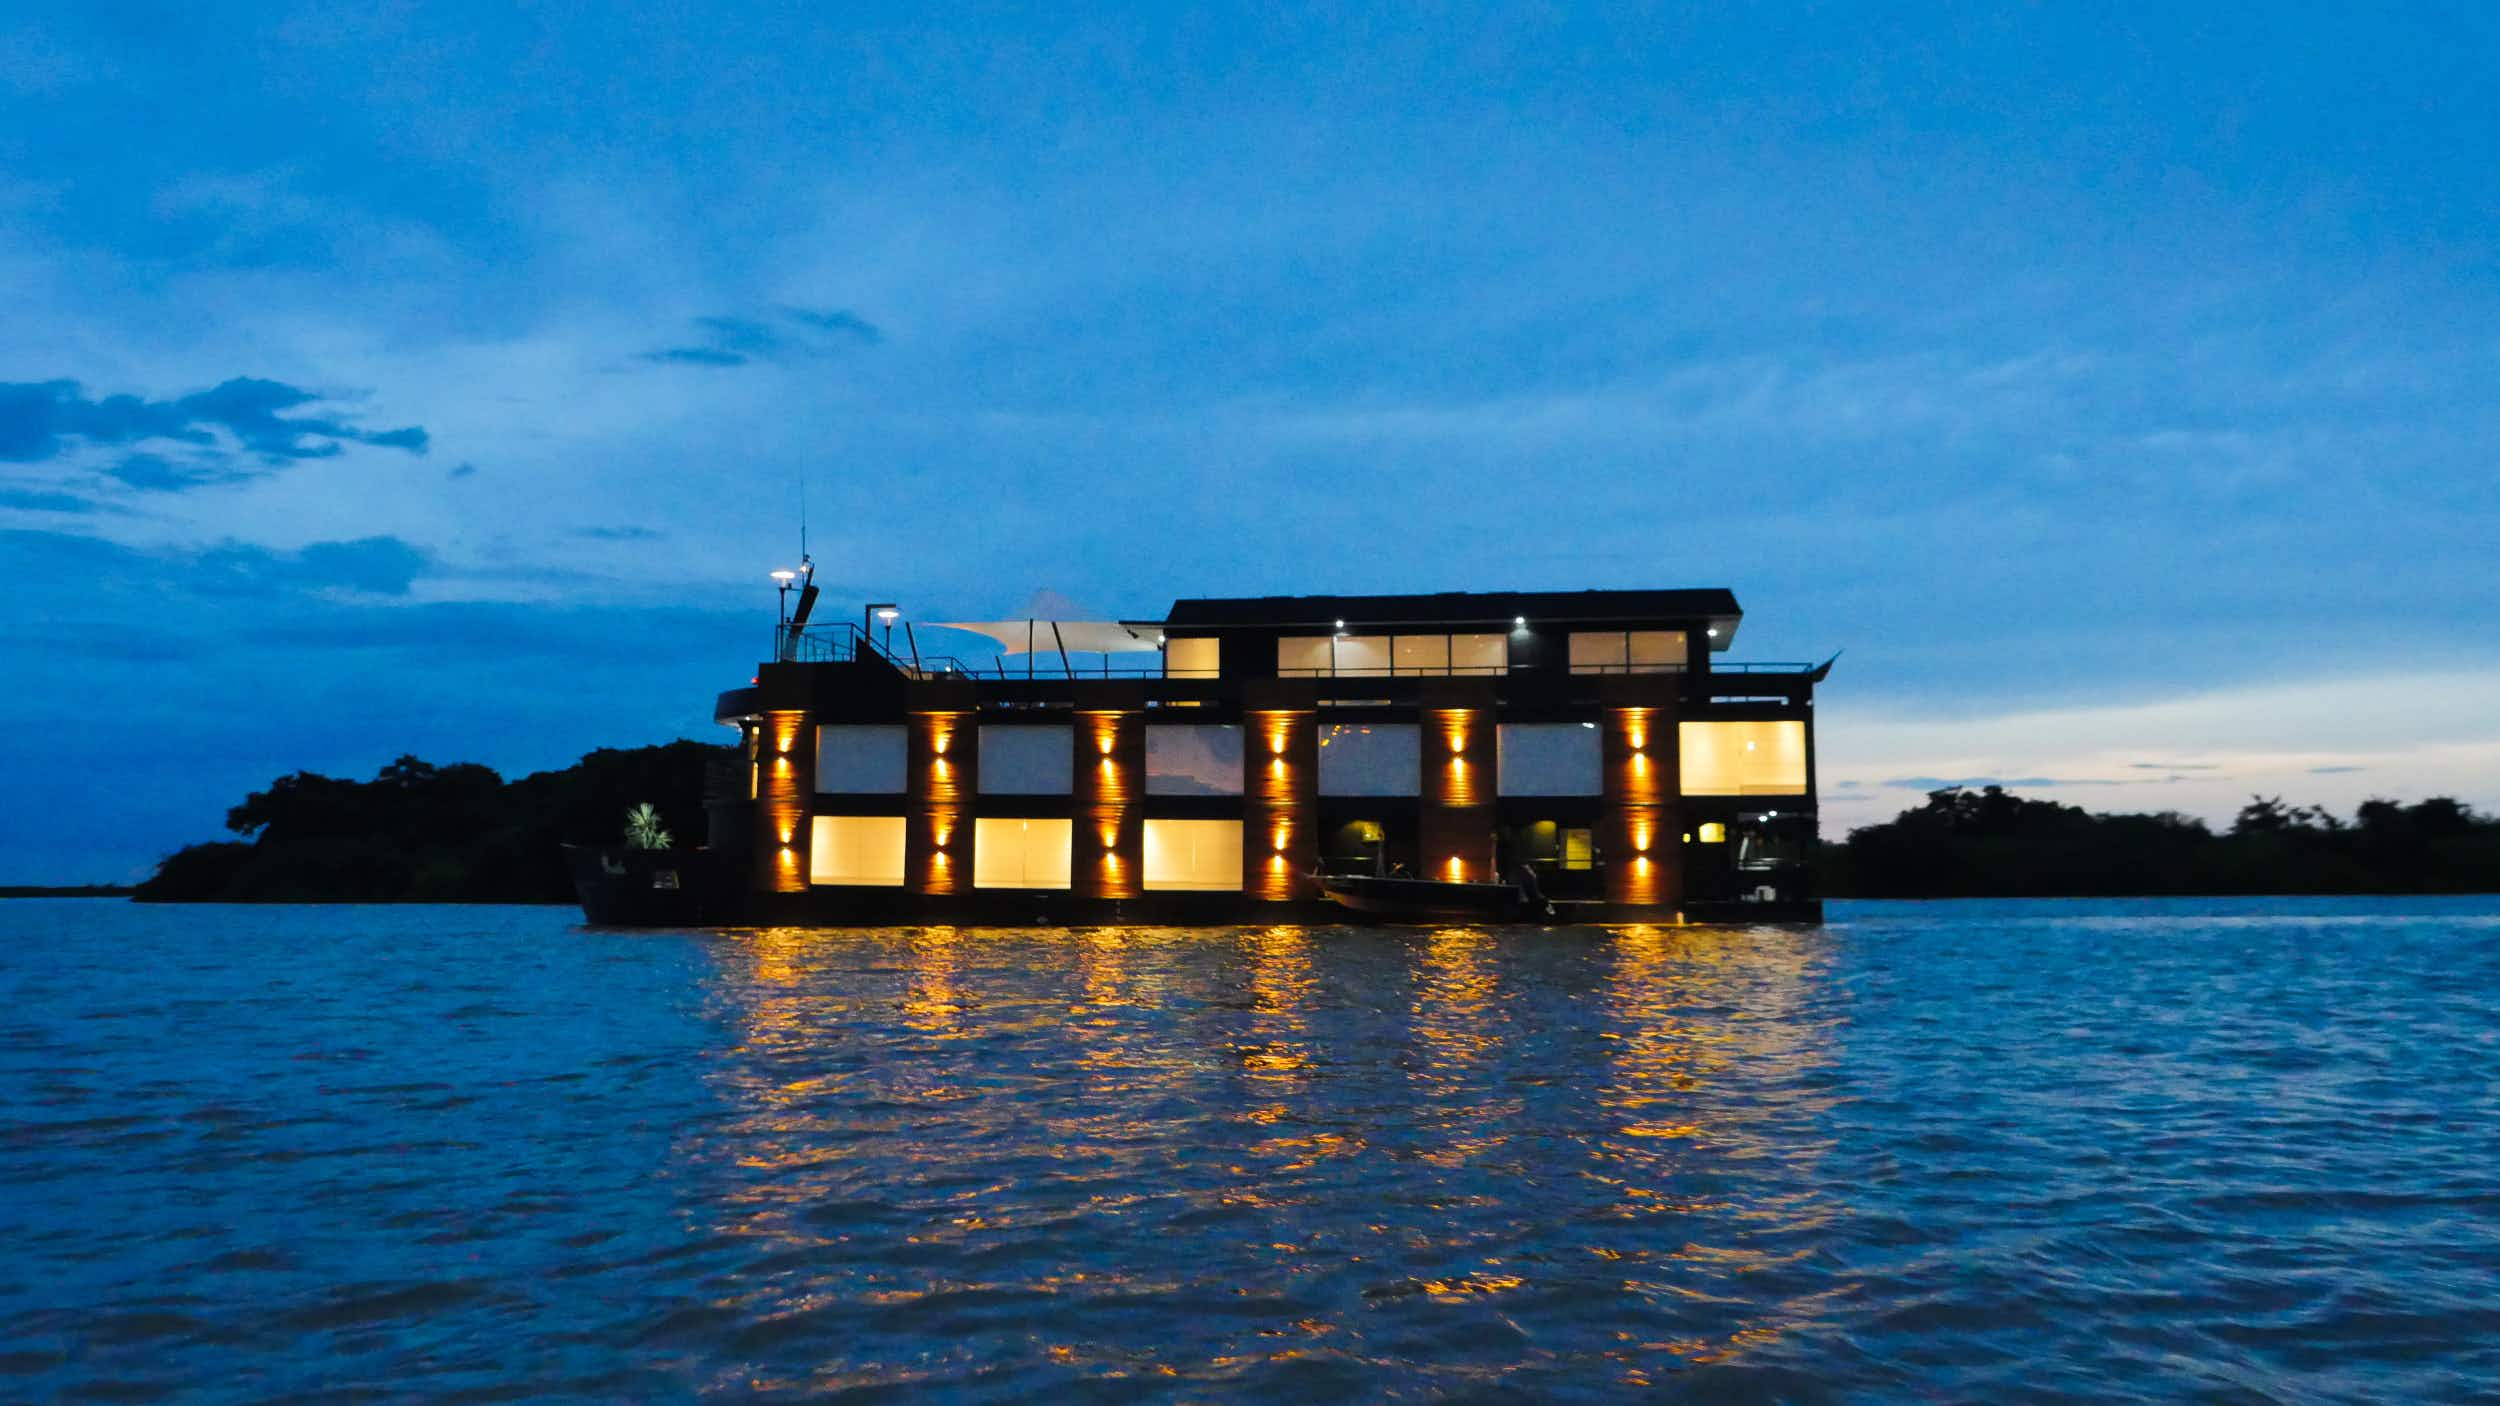 Explore Brazil's wild tropical wetlands from this luxury expedition boat